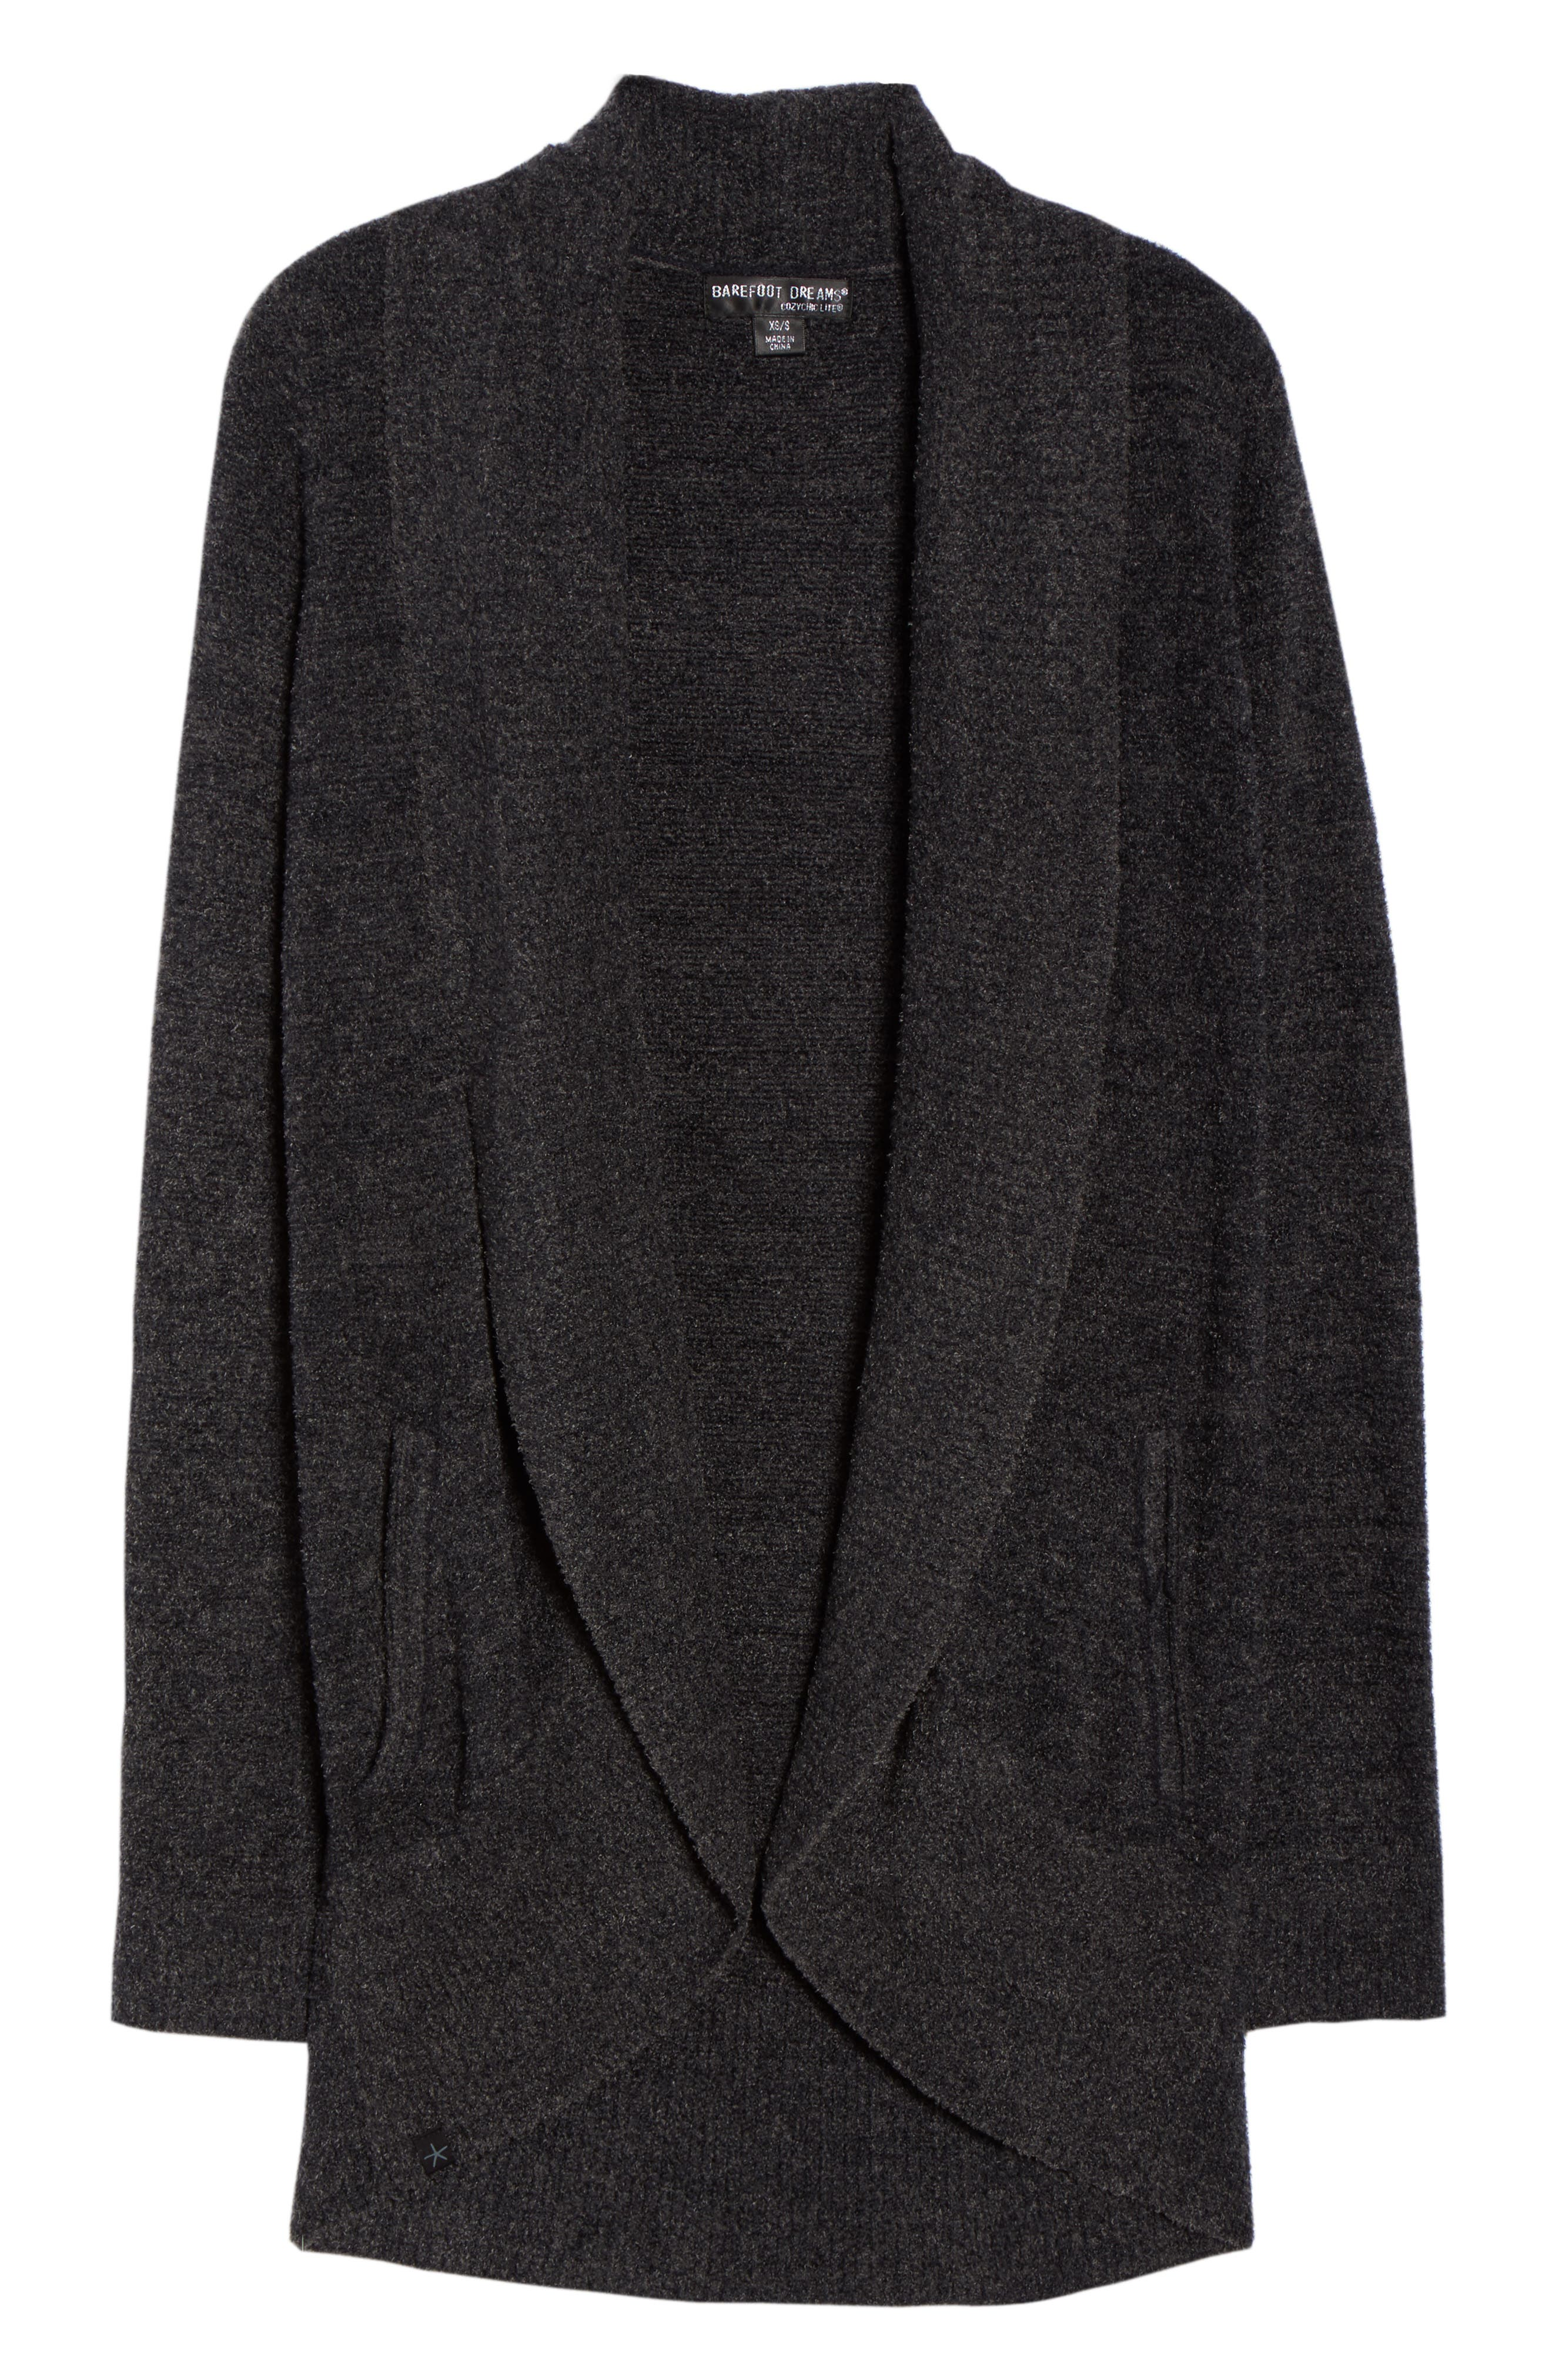 CozyChic Lite<sup>®</sup> Circle Cardigan,                             Alternate thumbnail 6, color,                             Carbon/ Black Heather